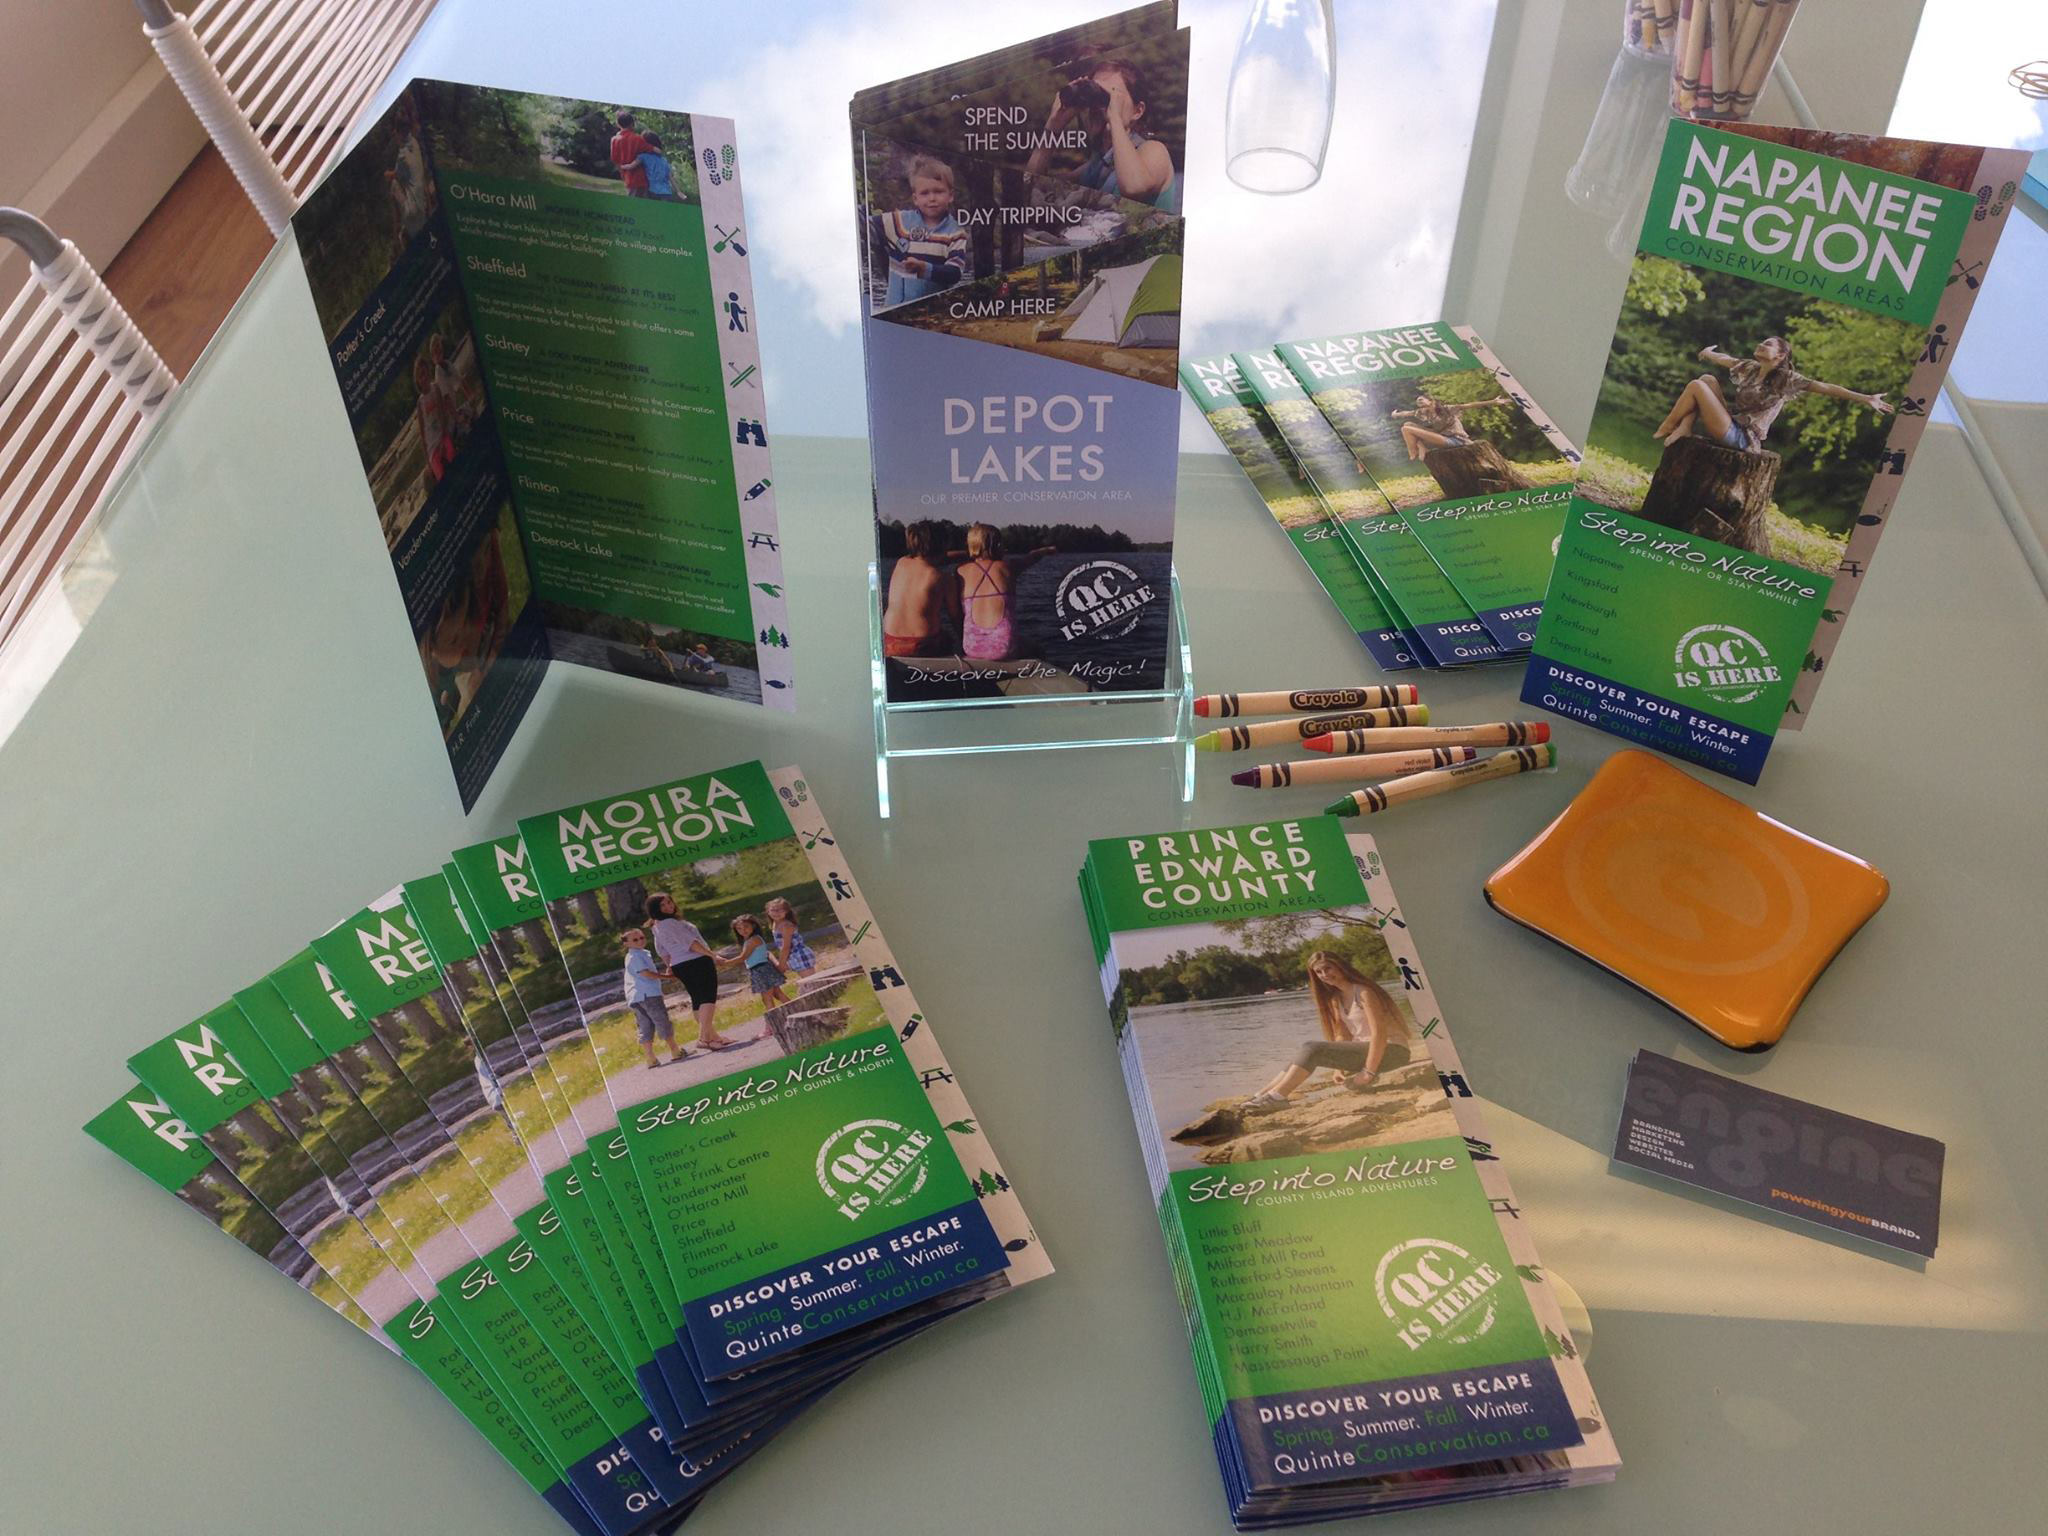 With so many options at Tourist rack card displays, we wanted to stand out above the crowd!